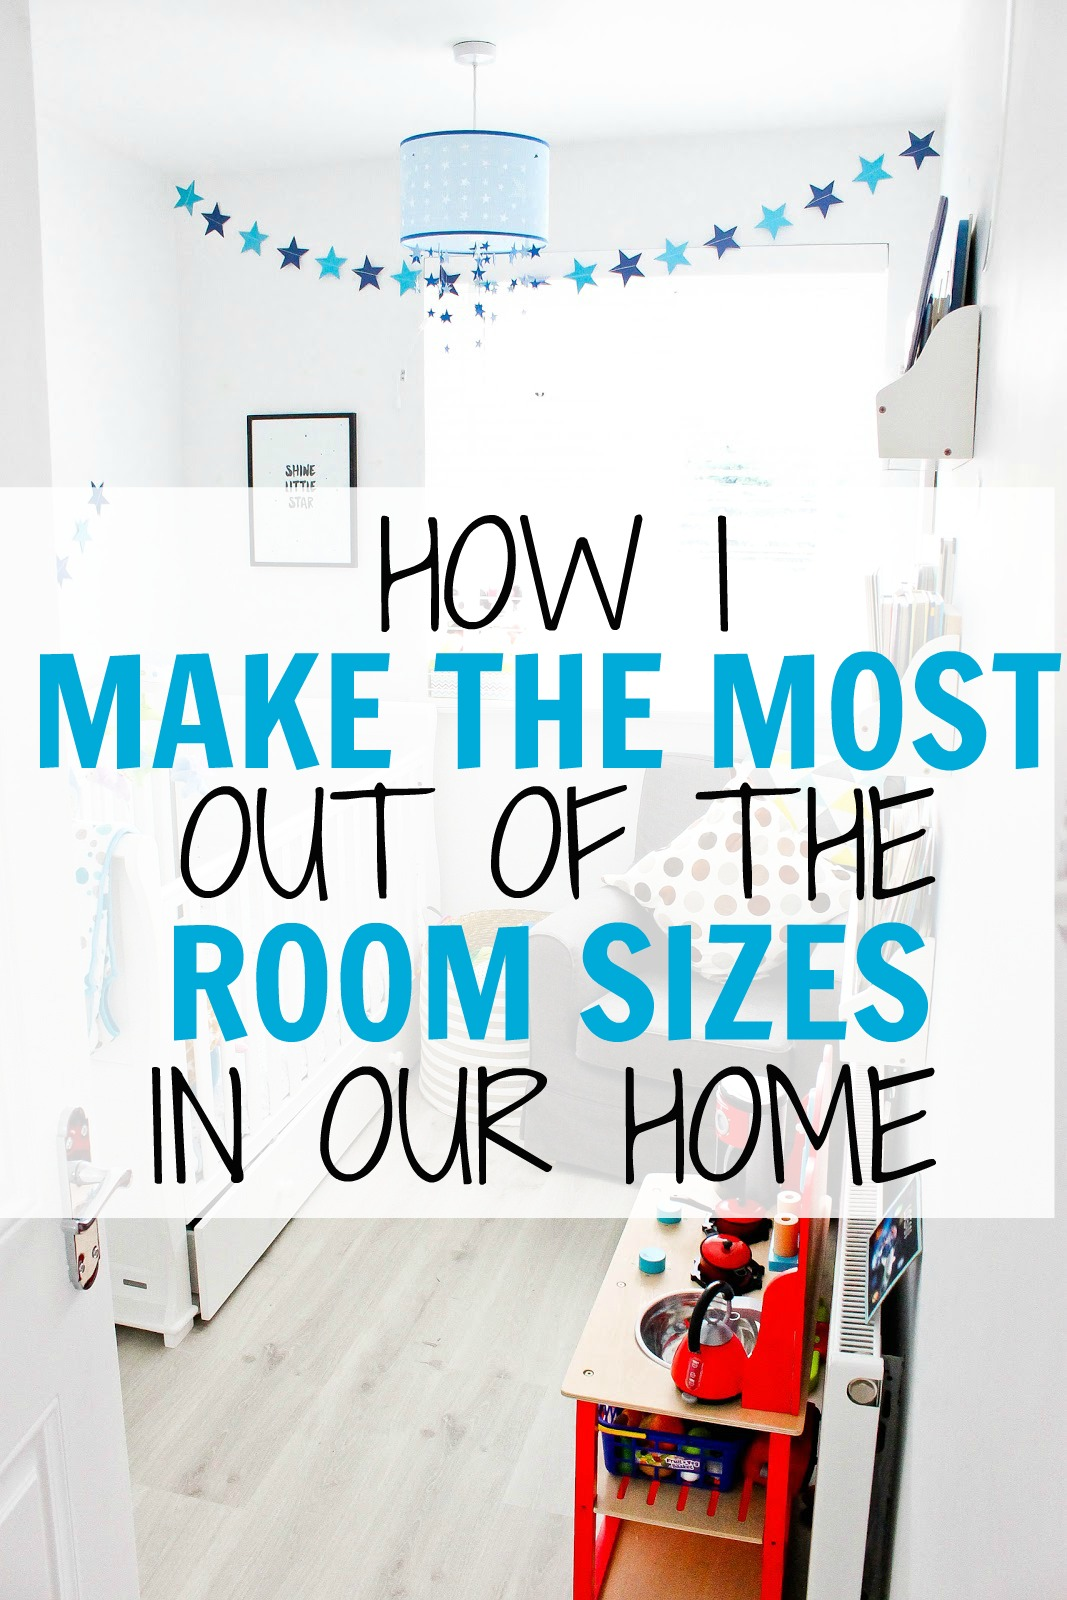 How I Made The Most Out Of The Room Sizes In Our Home, small rooms, modern nursery, blue star nursery, baby nursery ideas, inspiration for nursery,